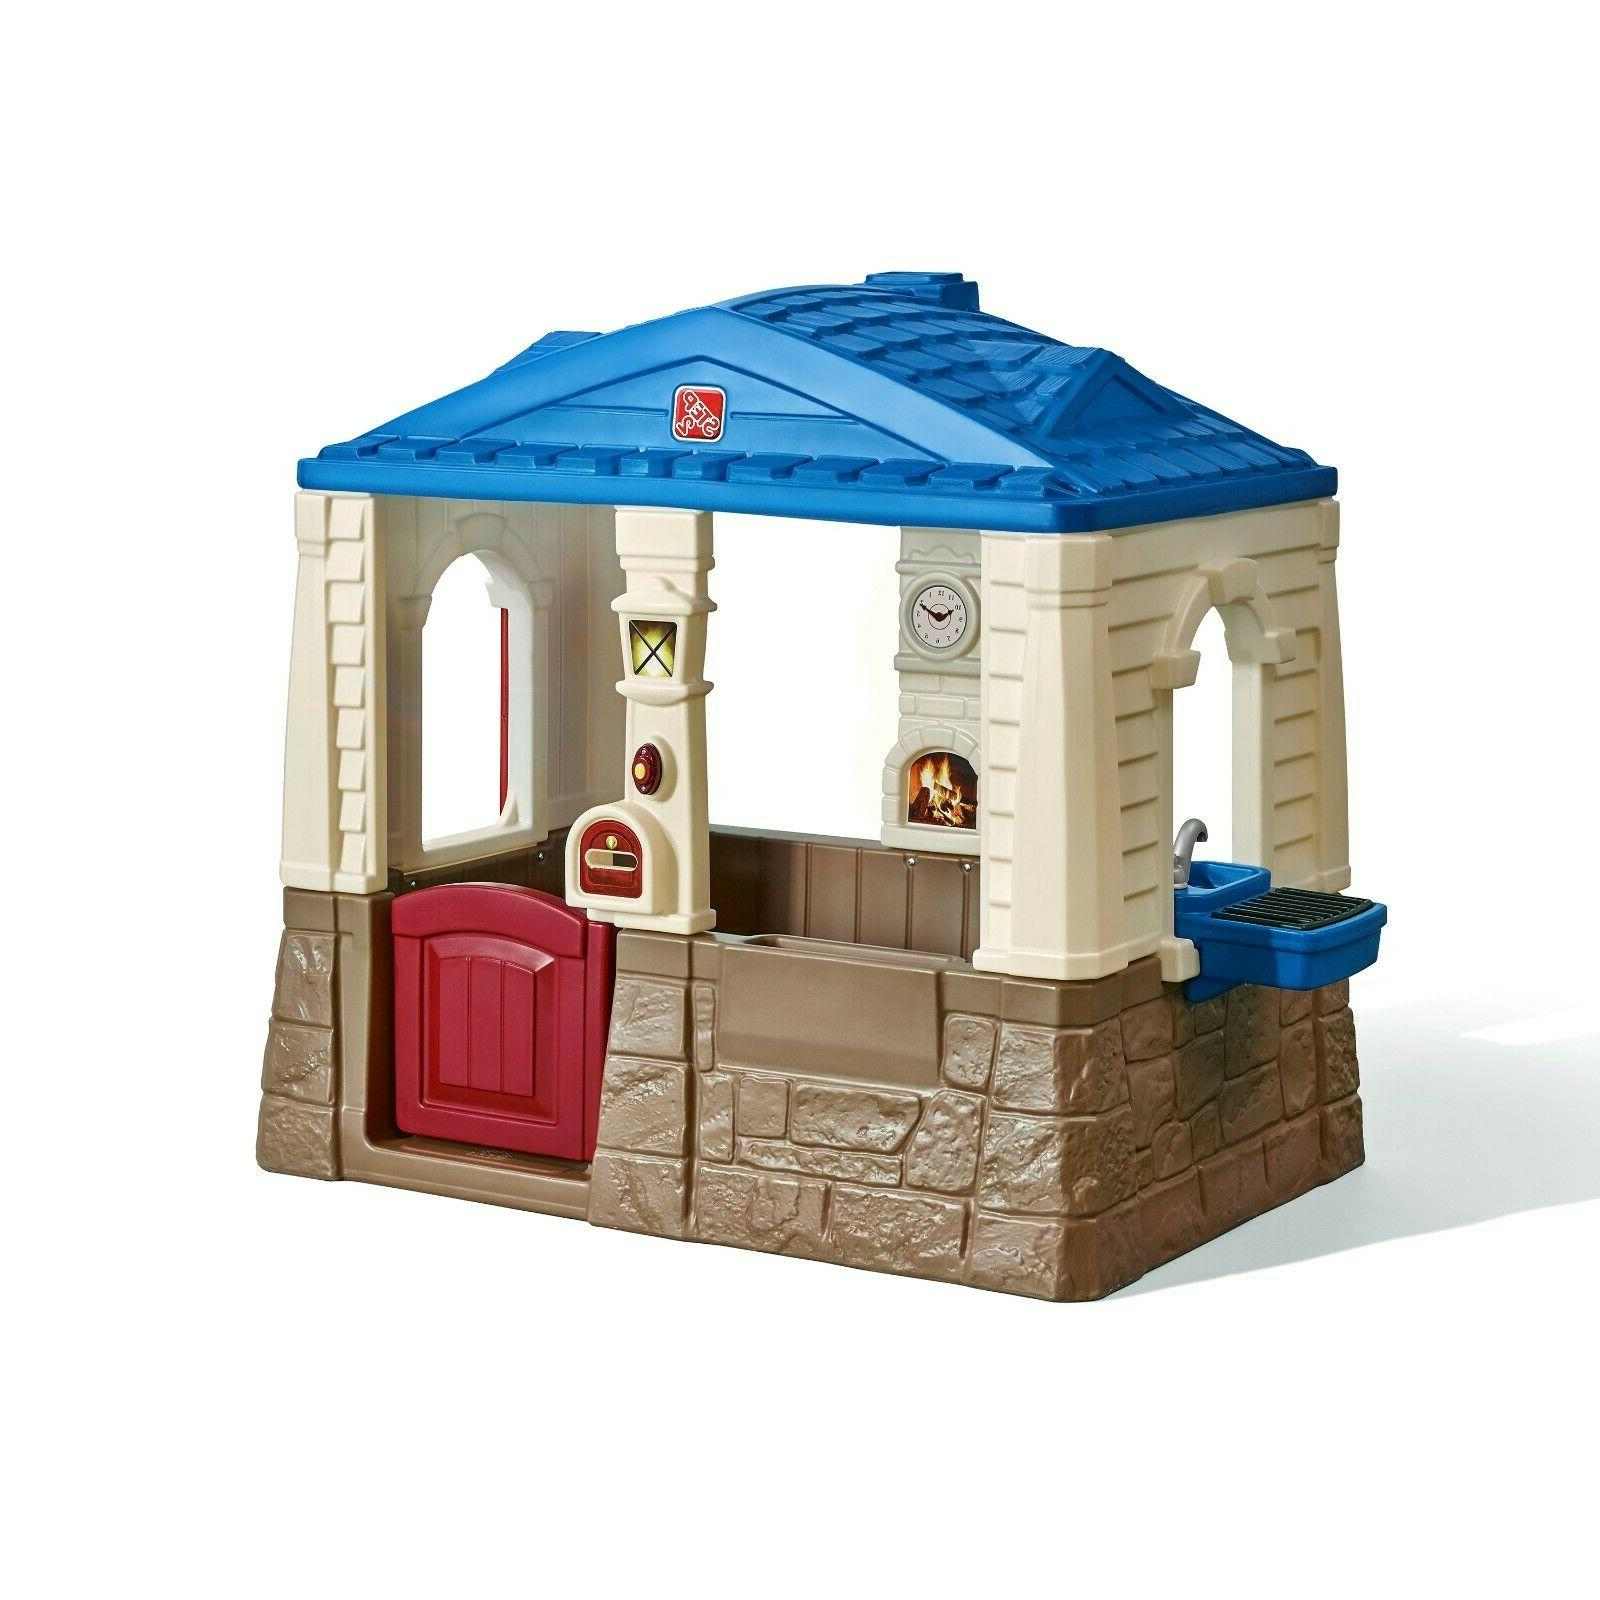 cottage playhouse outdoor kids toy children plastic